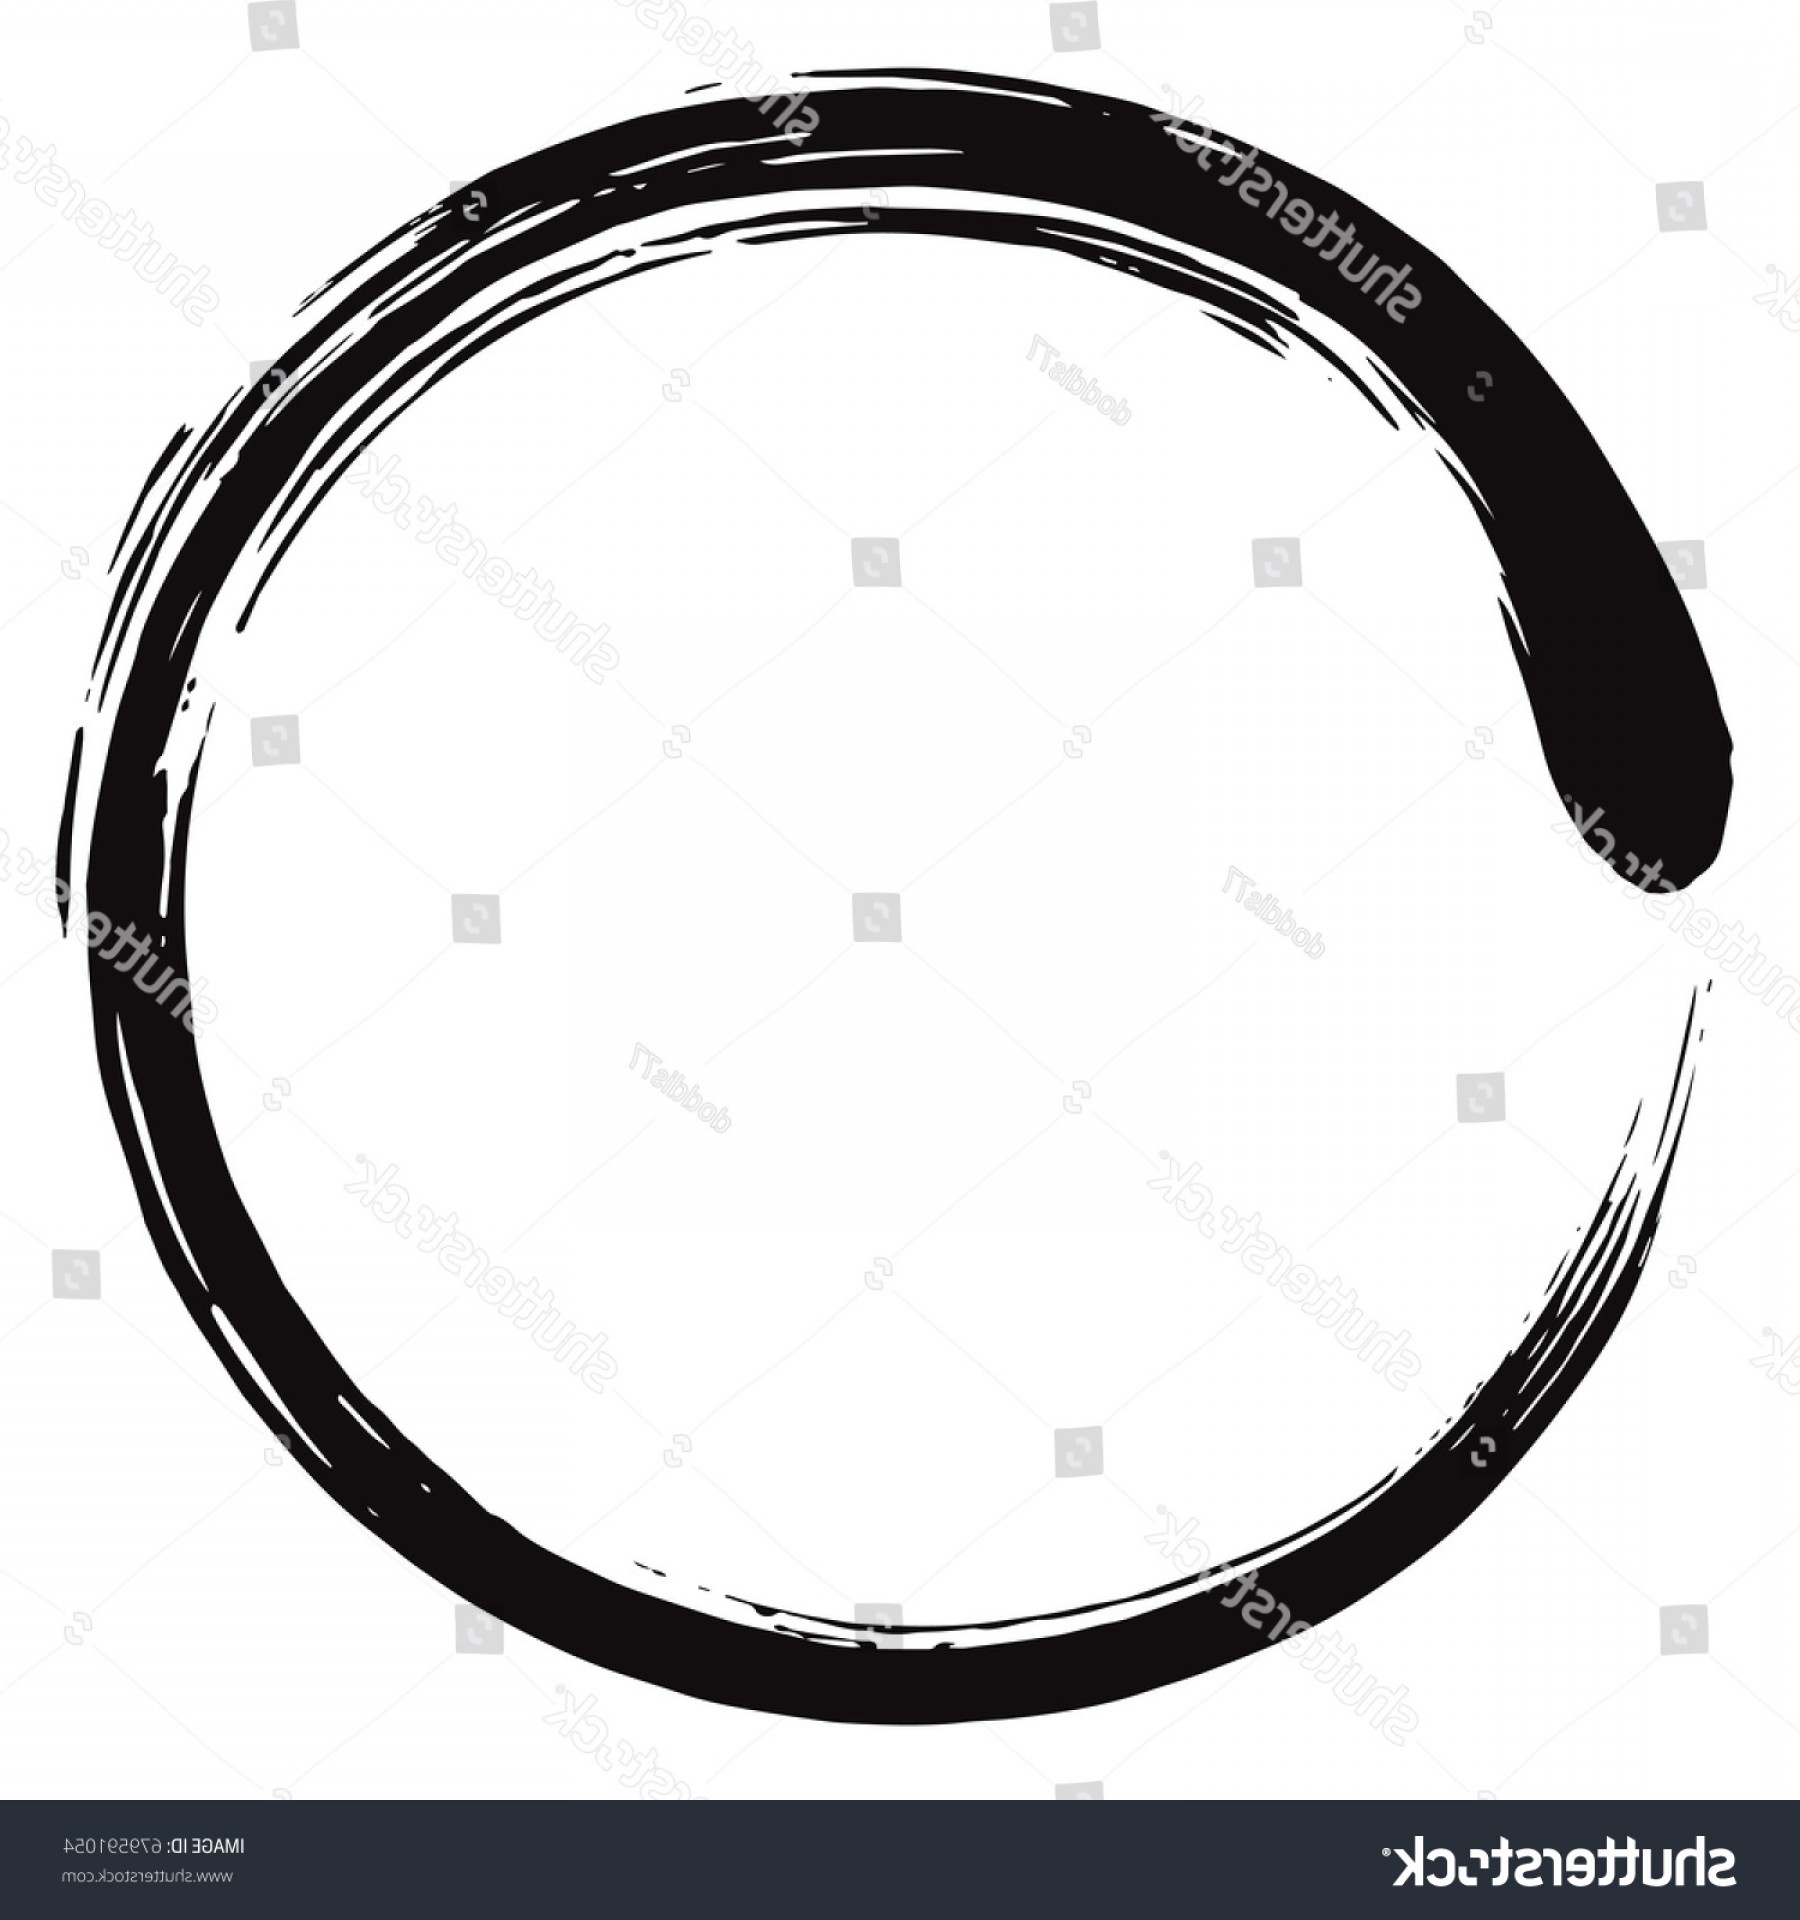 Enso Vector At Free For Personal Use Circuit Board Tshirts Spreadshirt 1800x1920 Minimalistic Zen Circle Arenawp